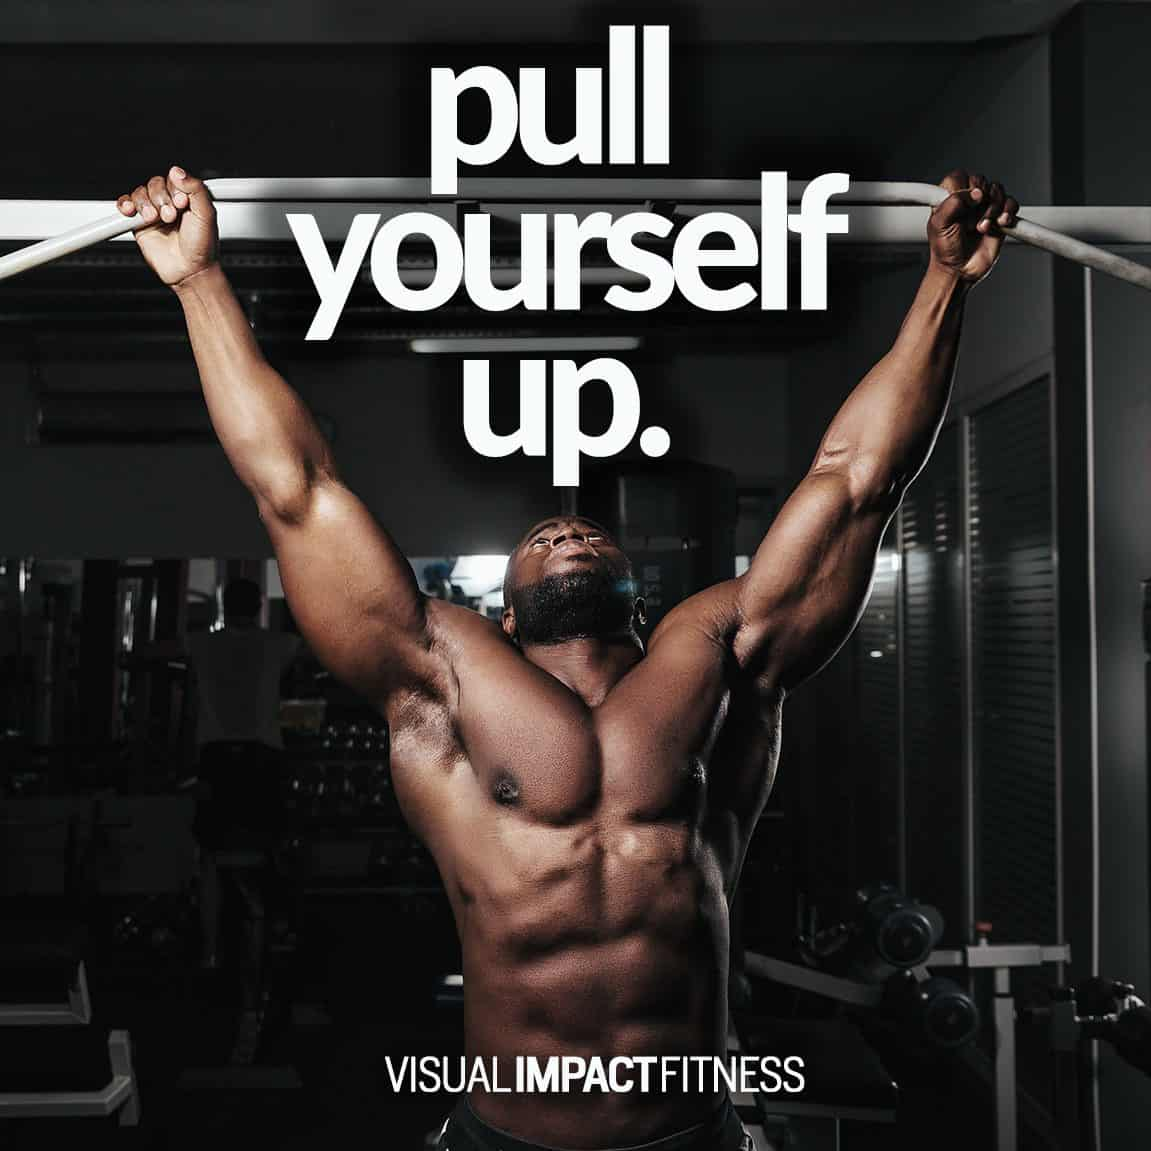 Pull yourself up